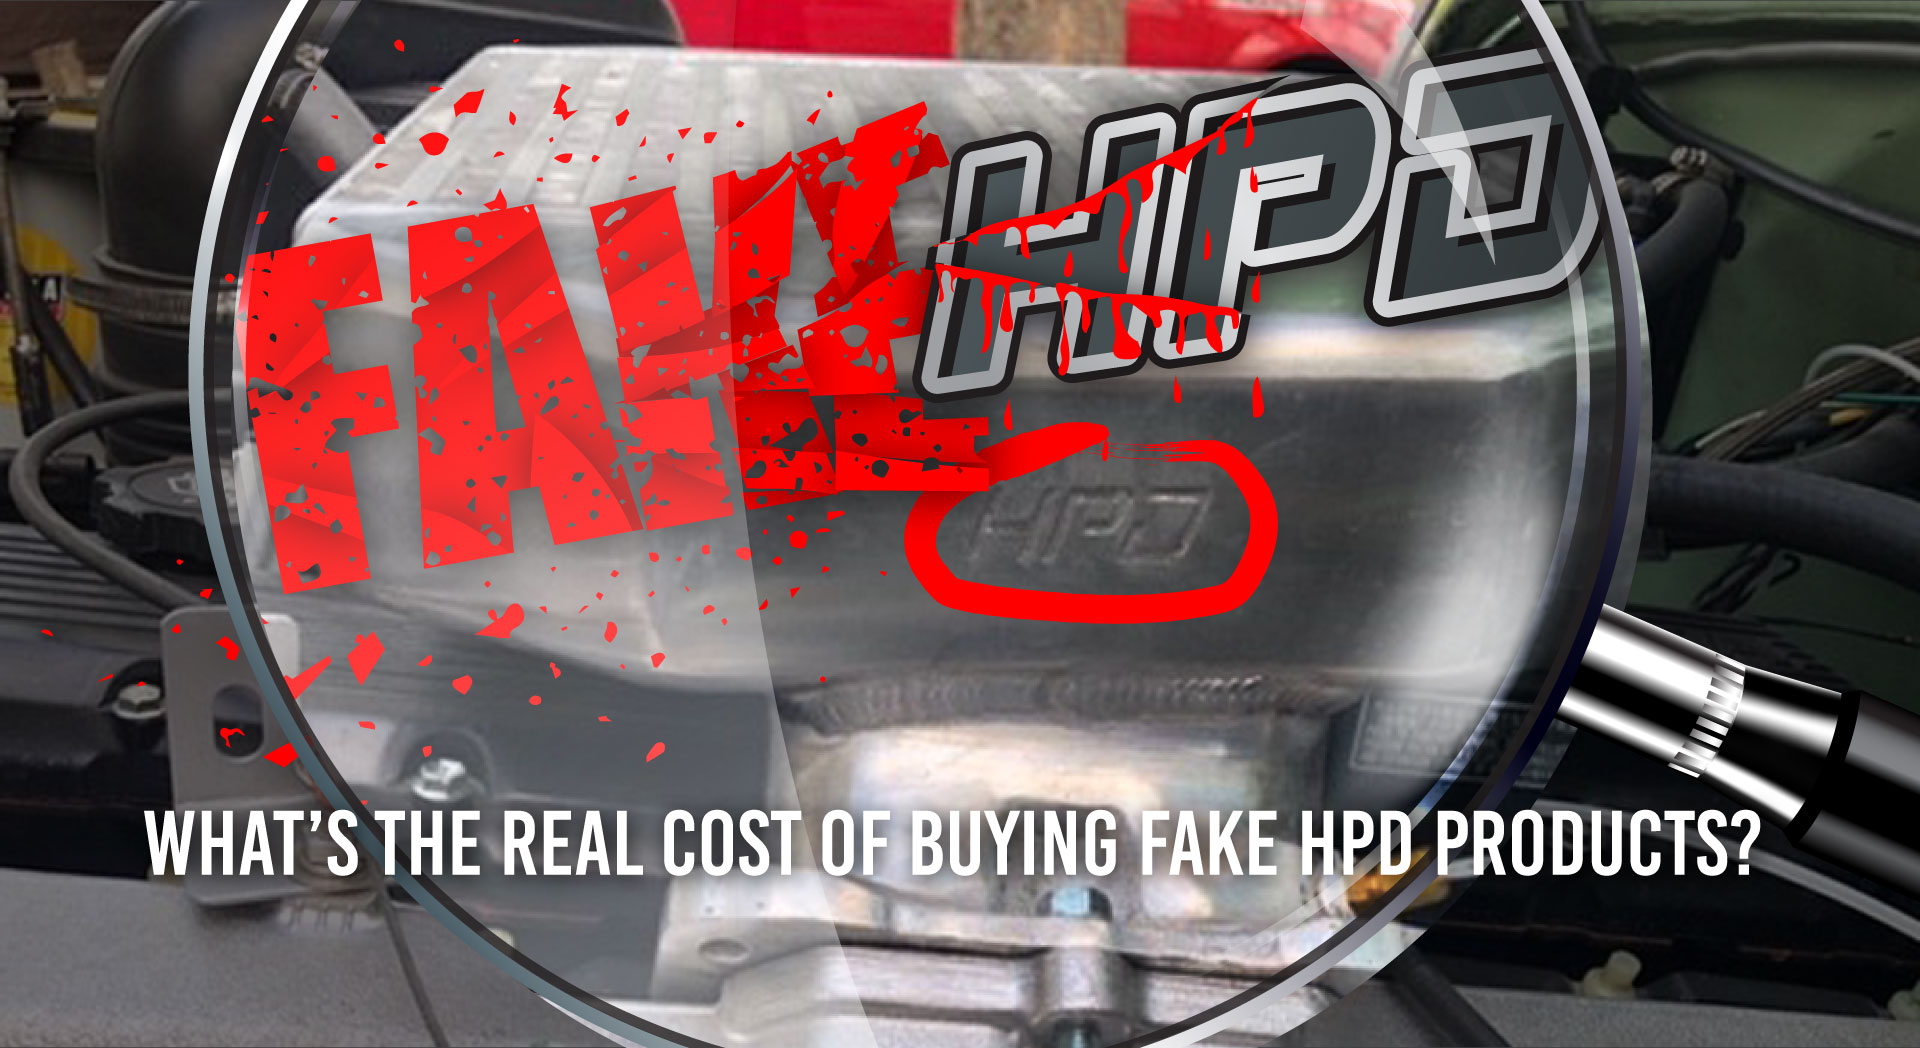 What is the real cost of fake HPD products?